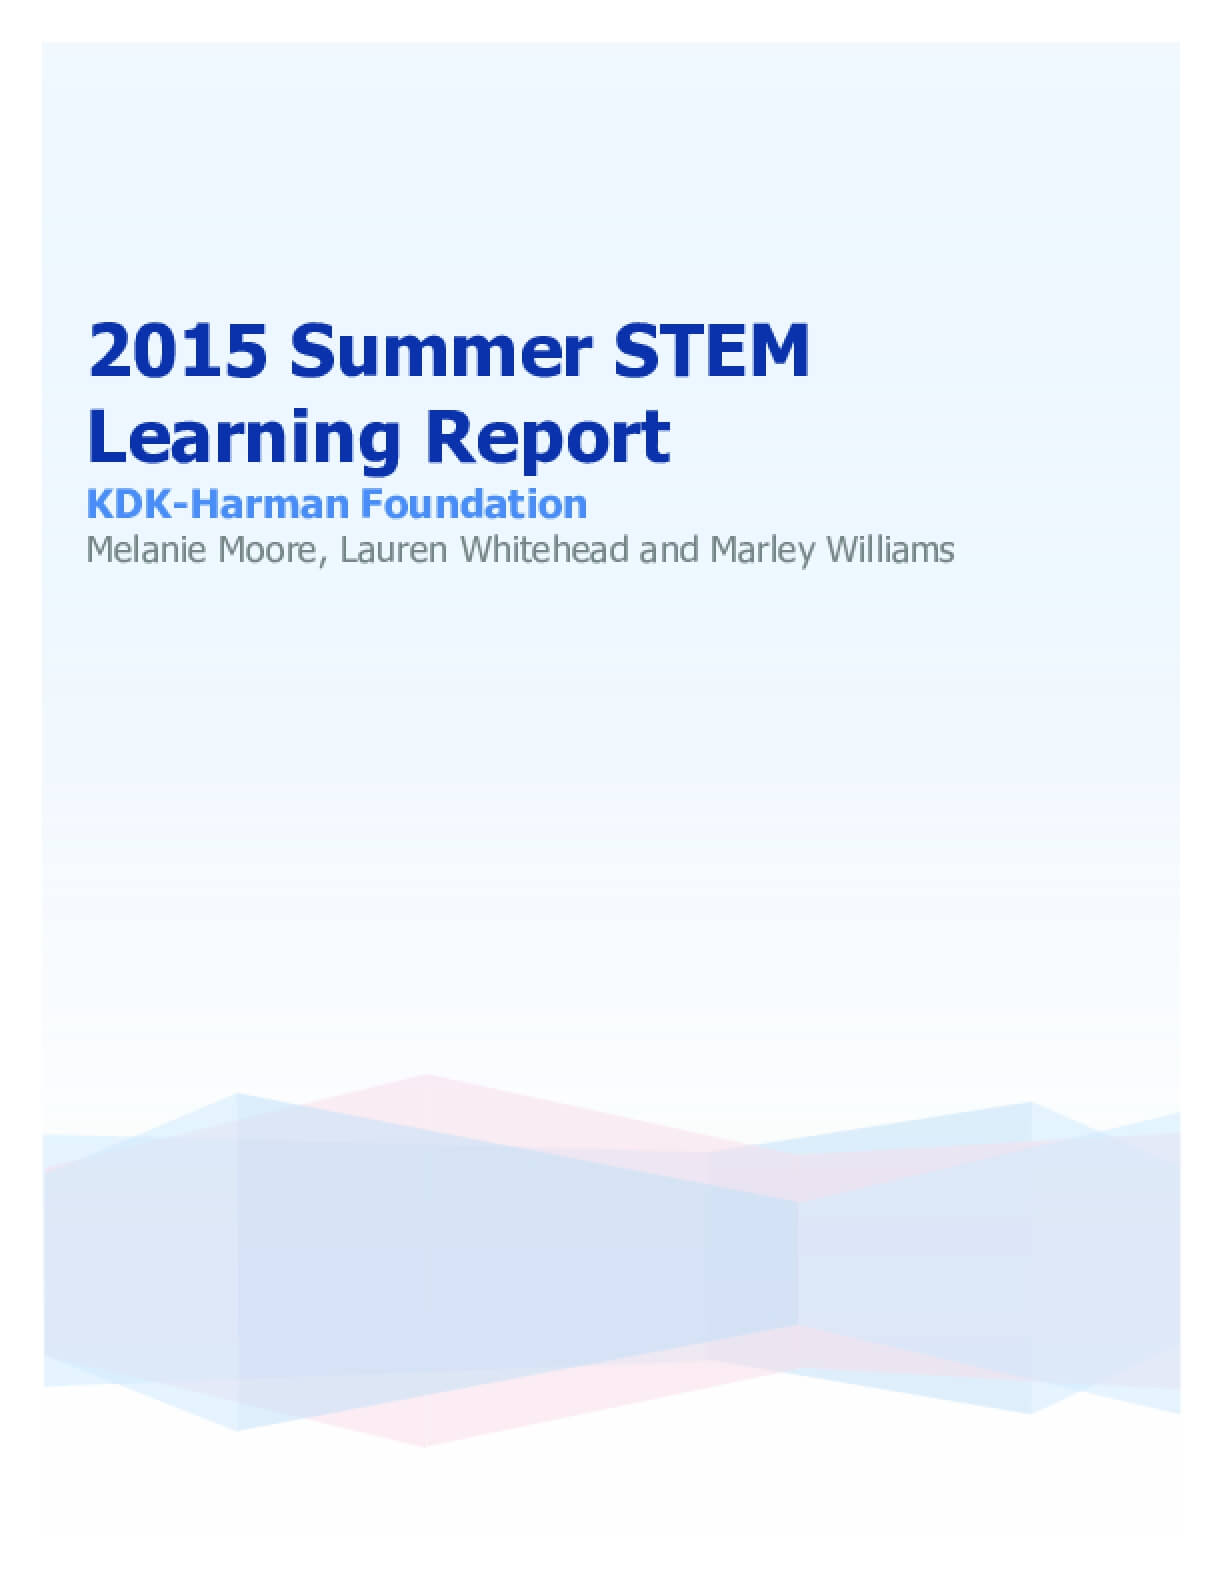 2015 Summer STEM Learning Report